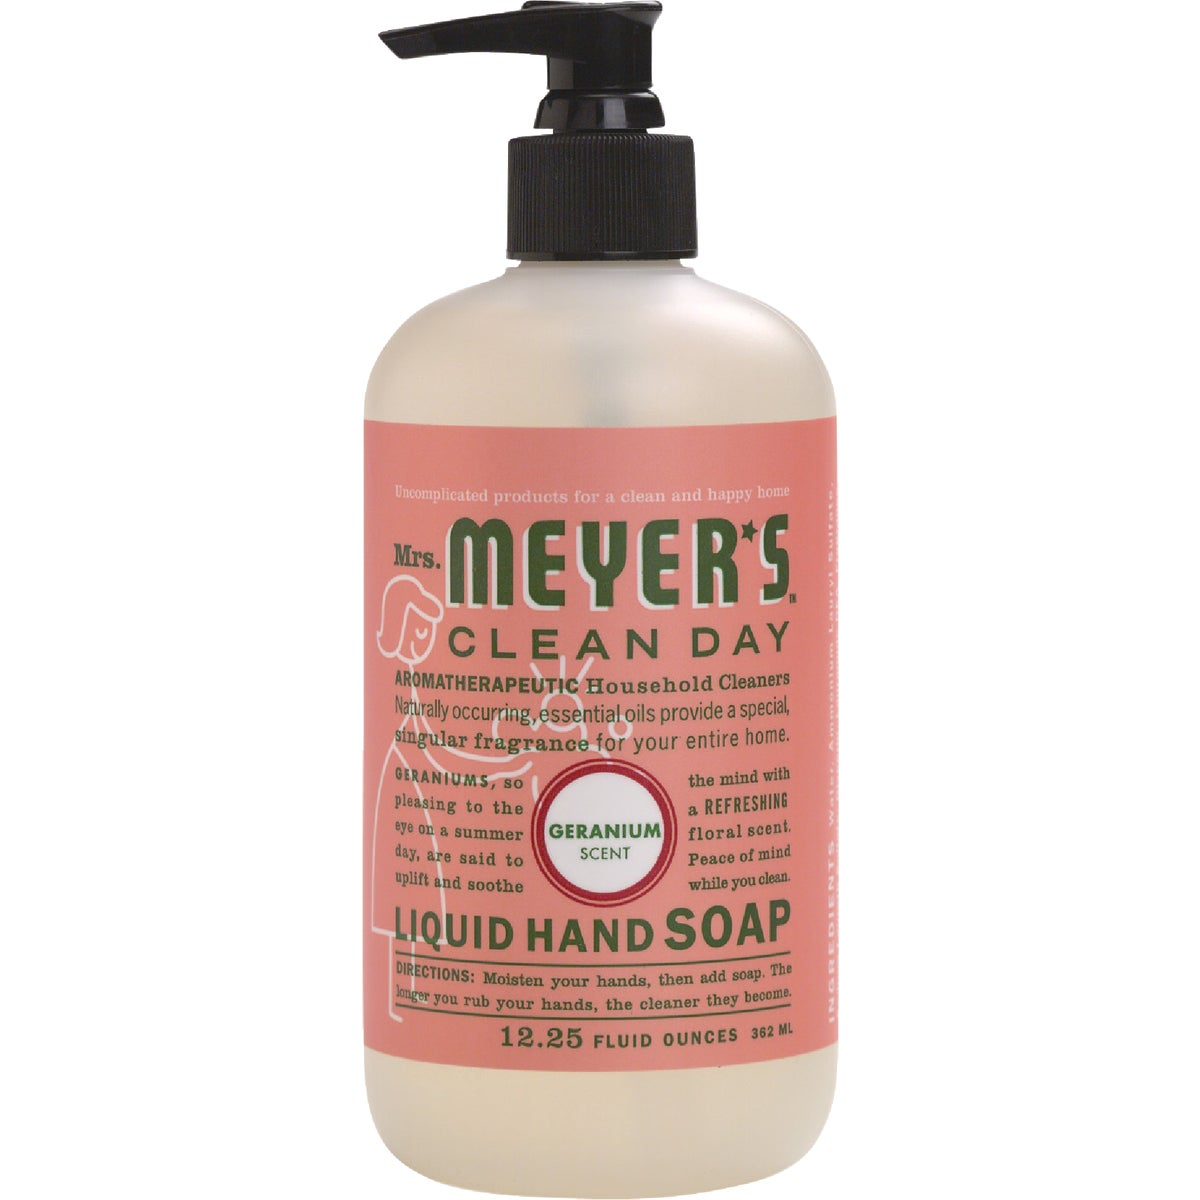 FLORAL LIQUID HAND SOAP - 13104 by Mrs Meyers Clean Day